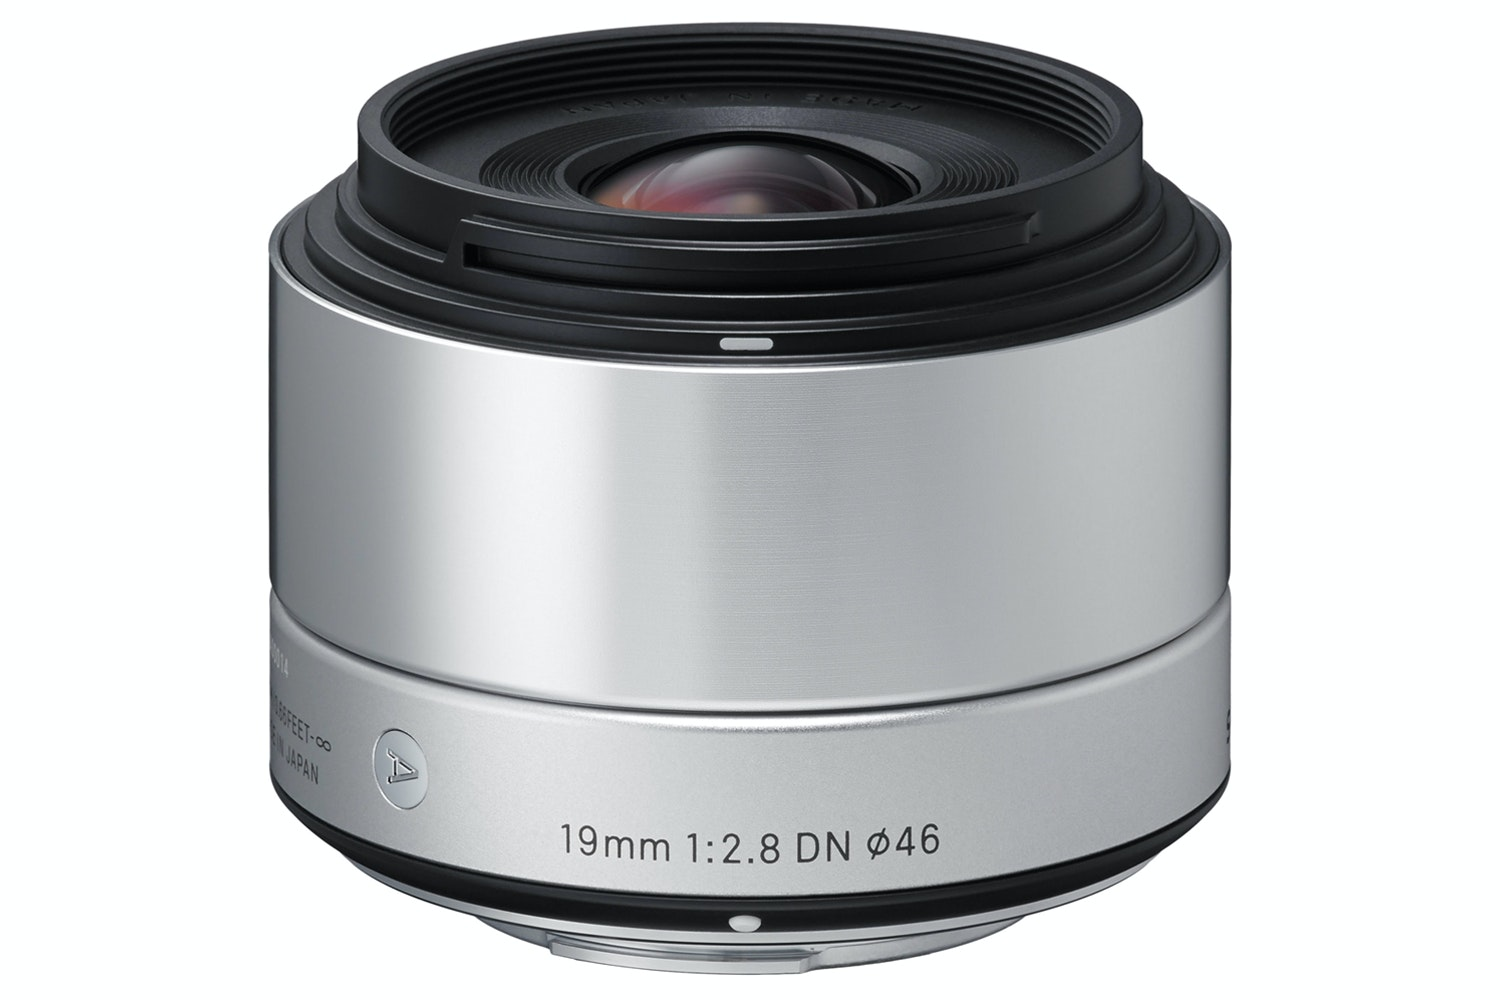 Sigma 19mm f2.8 DN lens for Sony E-mount